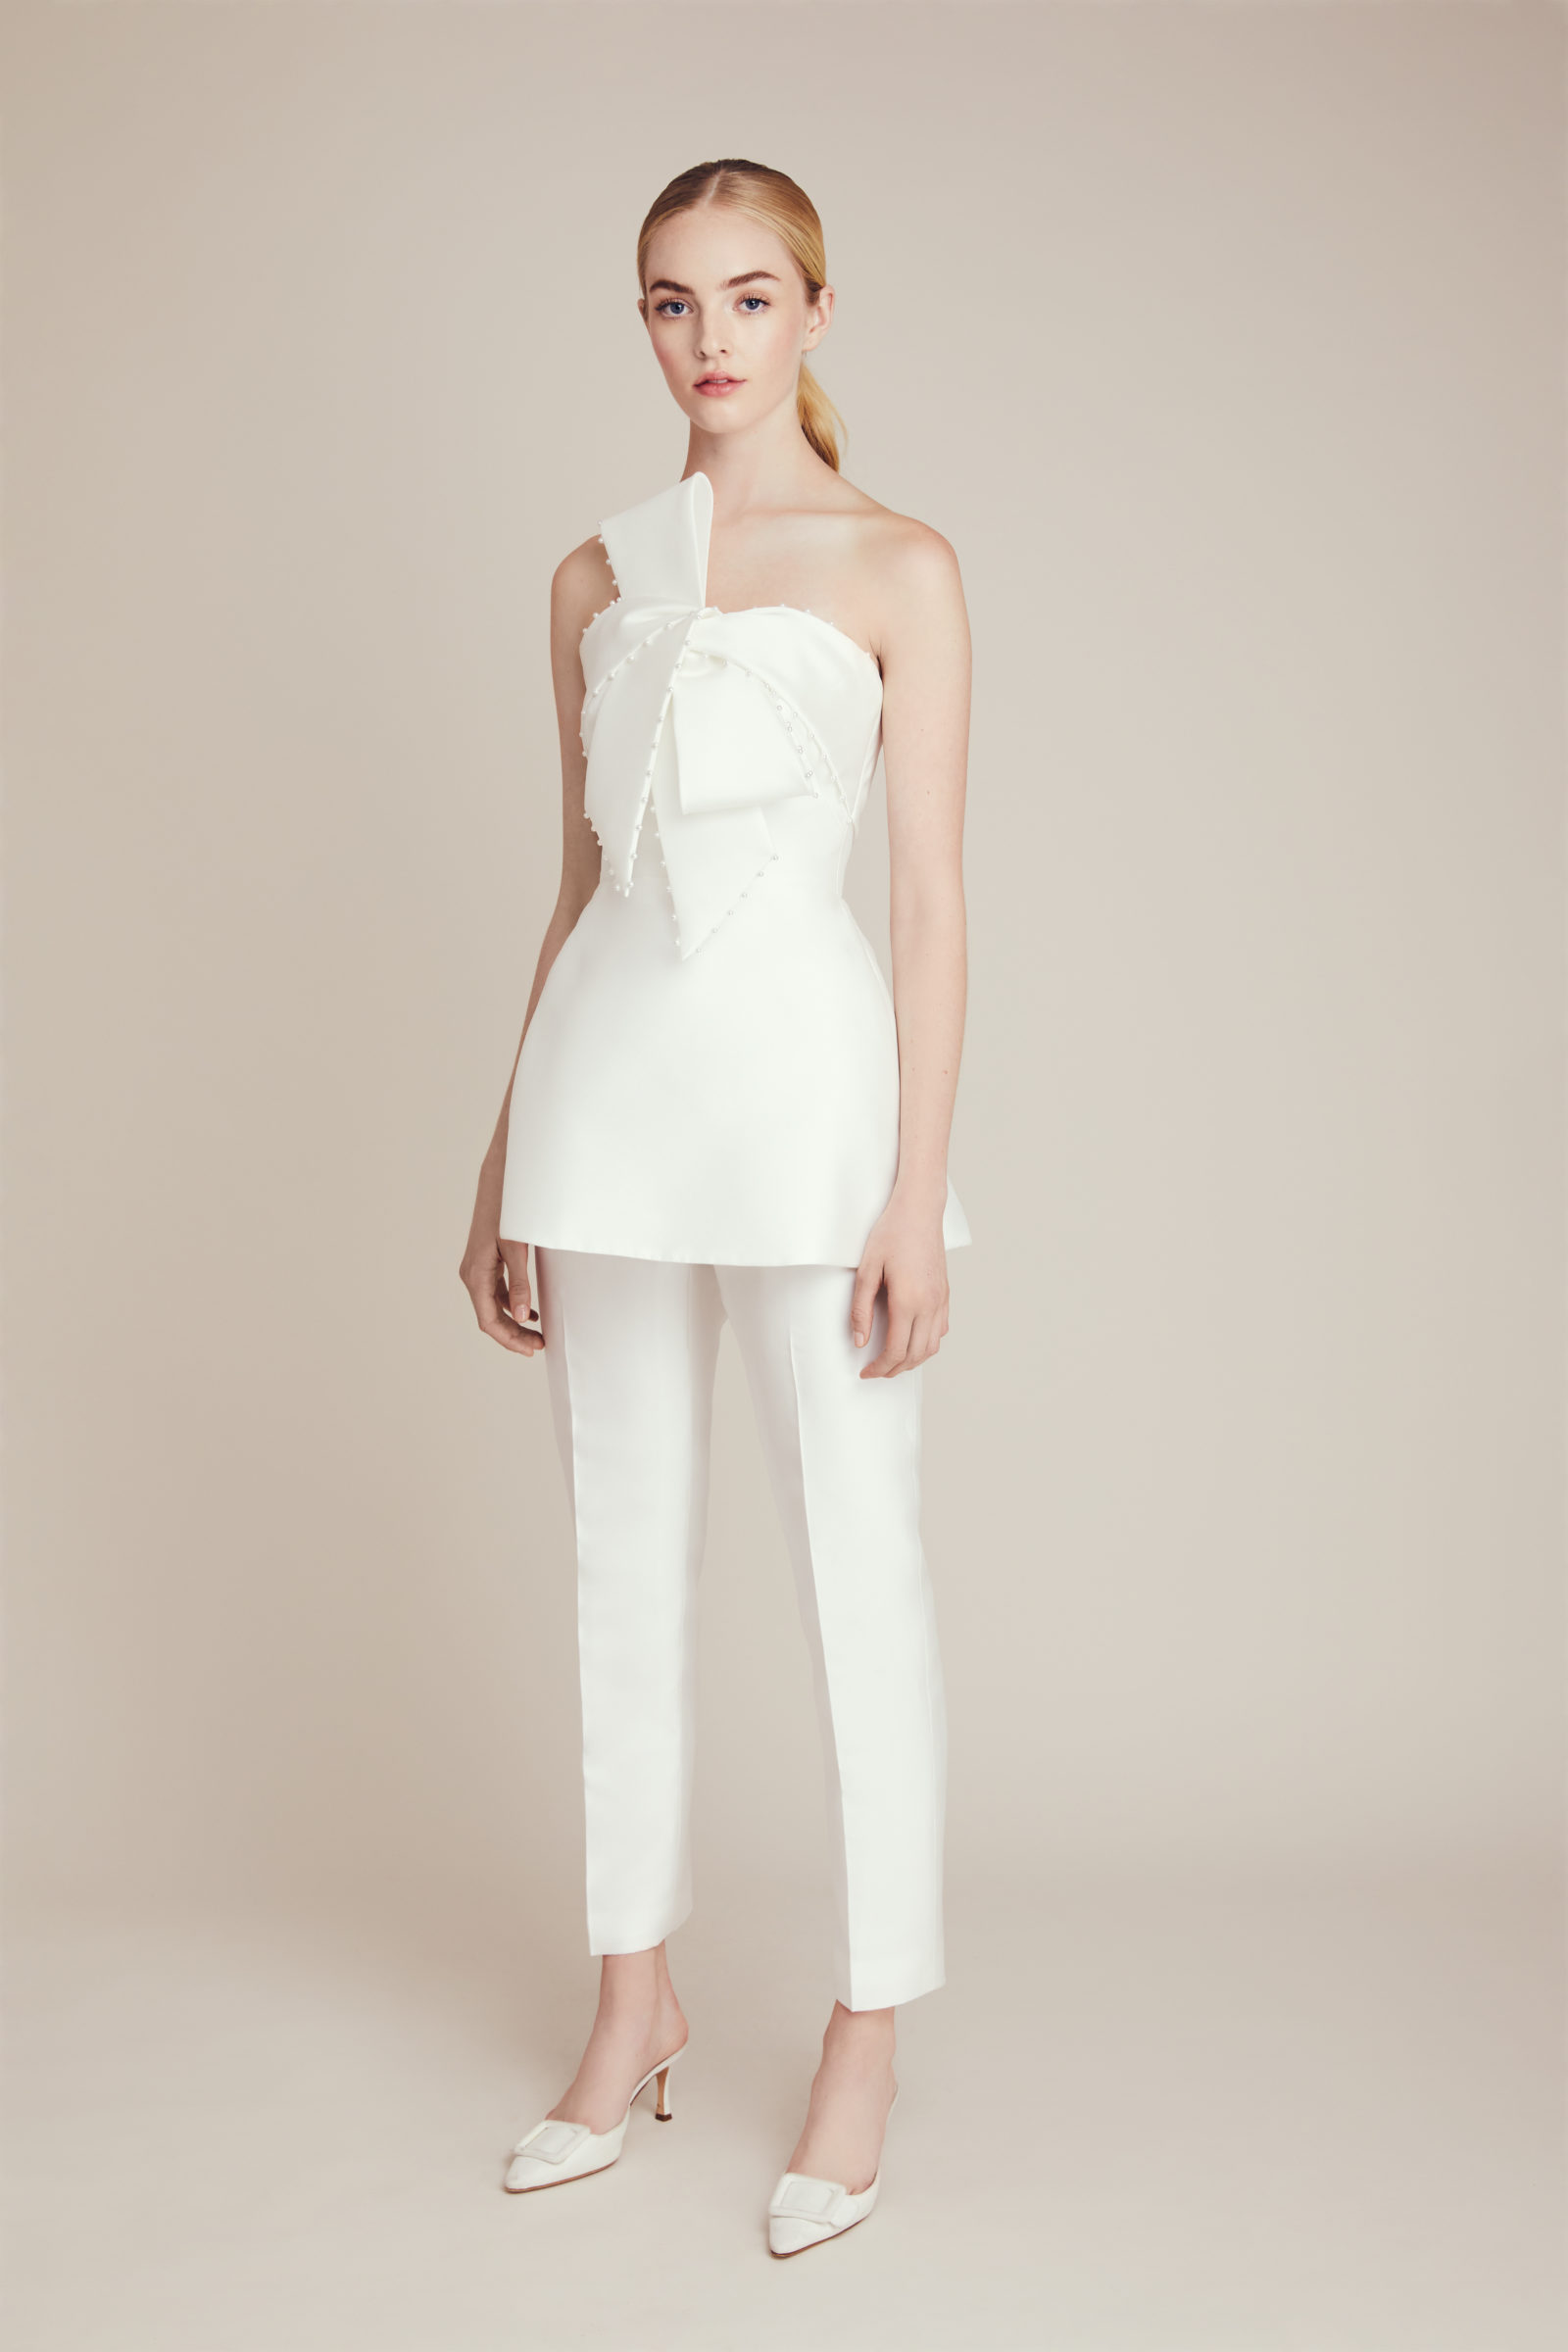 Lela Rose two-piece bridal gown